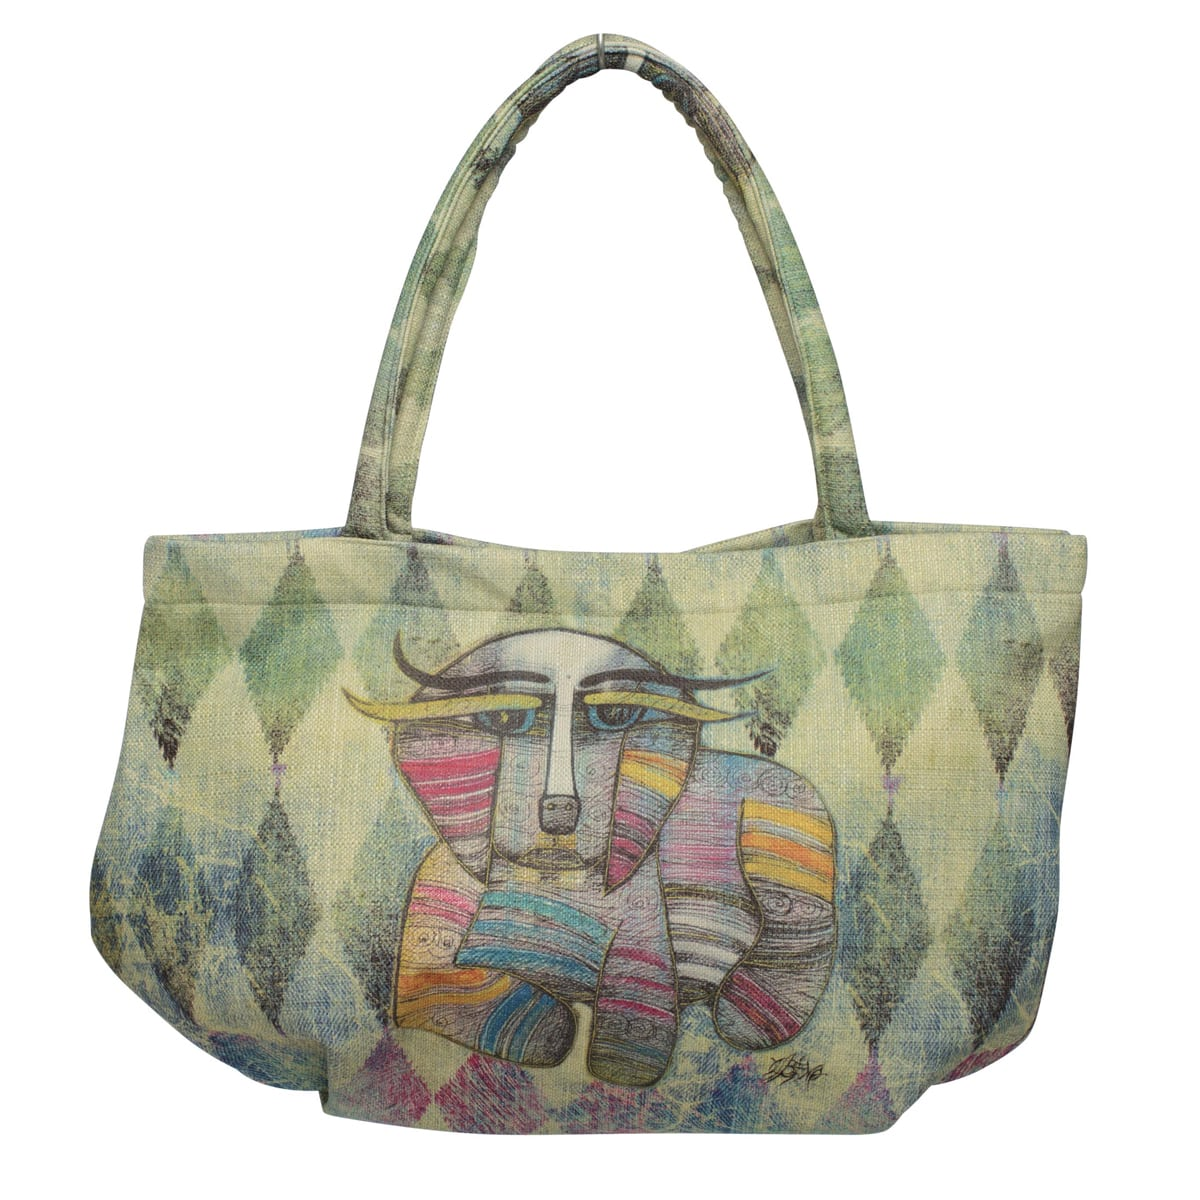 Totes for Dog Lovers - Bubble Handbag with Dog Art by Albena